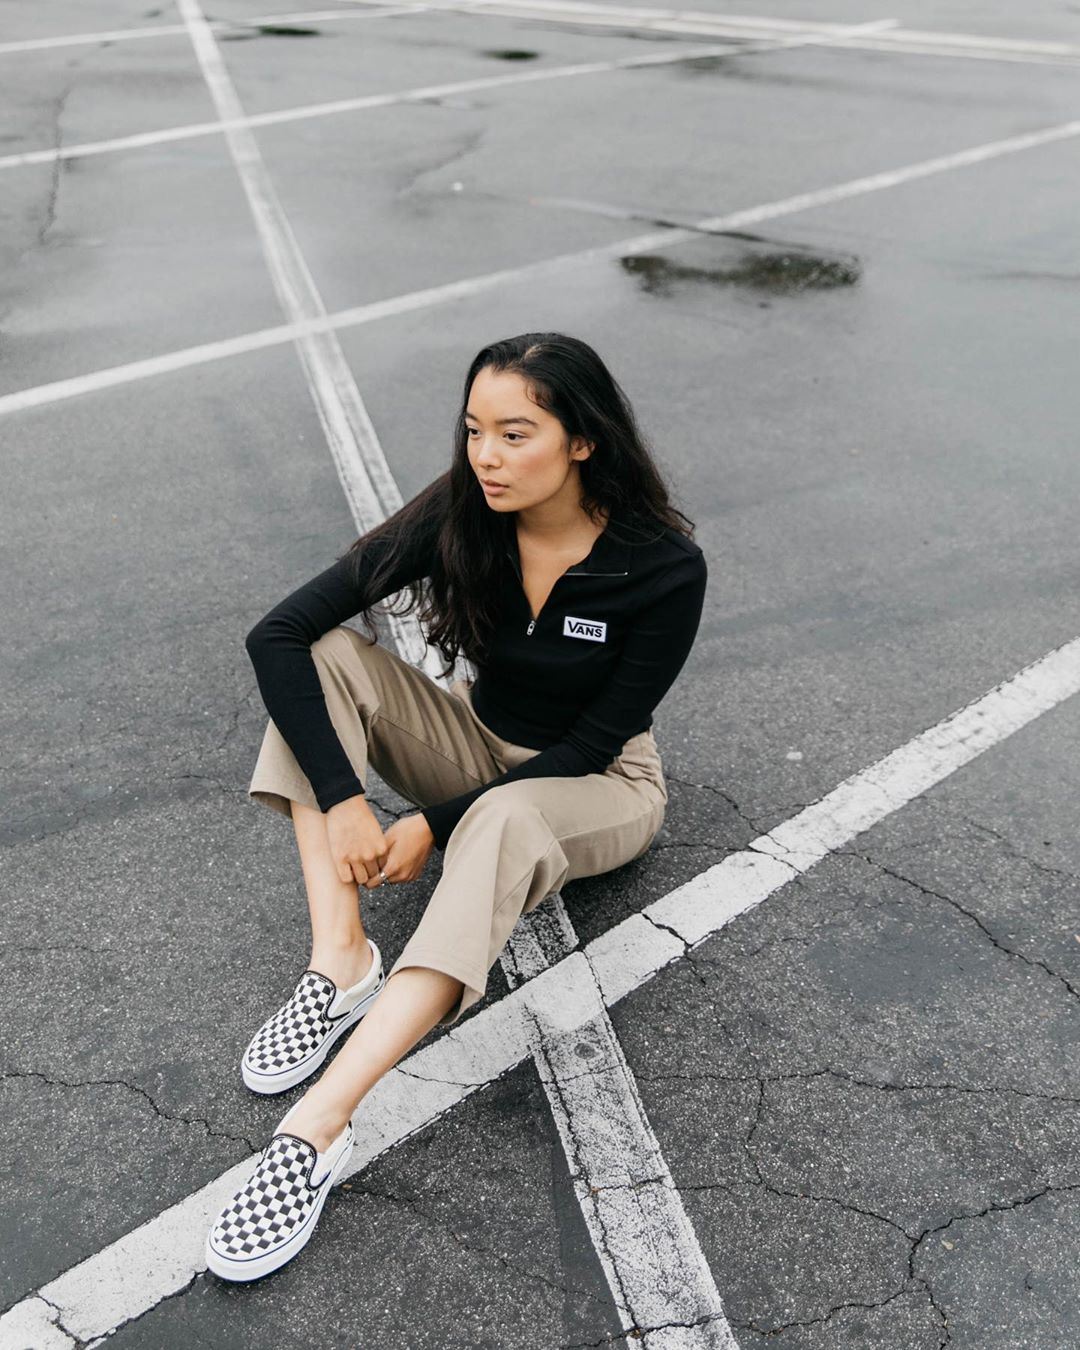 Vans Classic Slip-On Shoes Are the Most